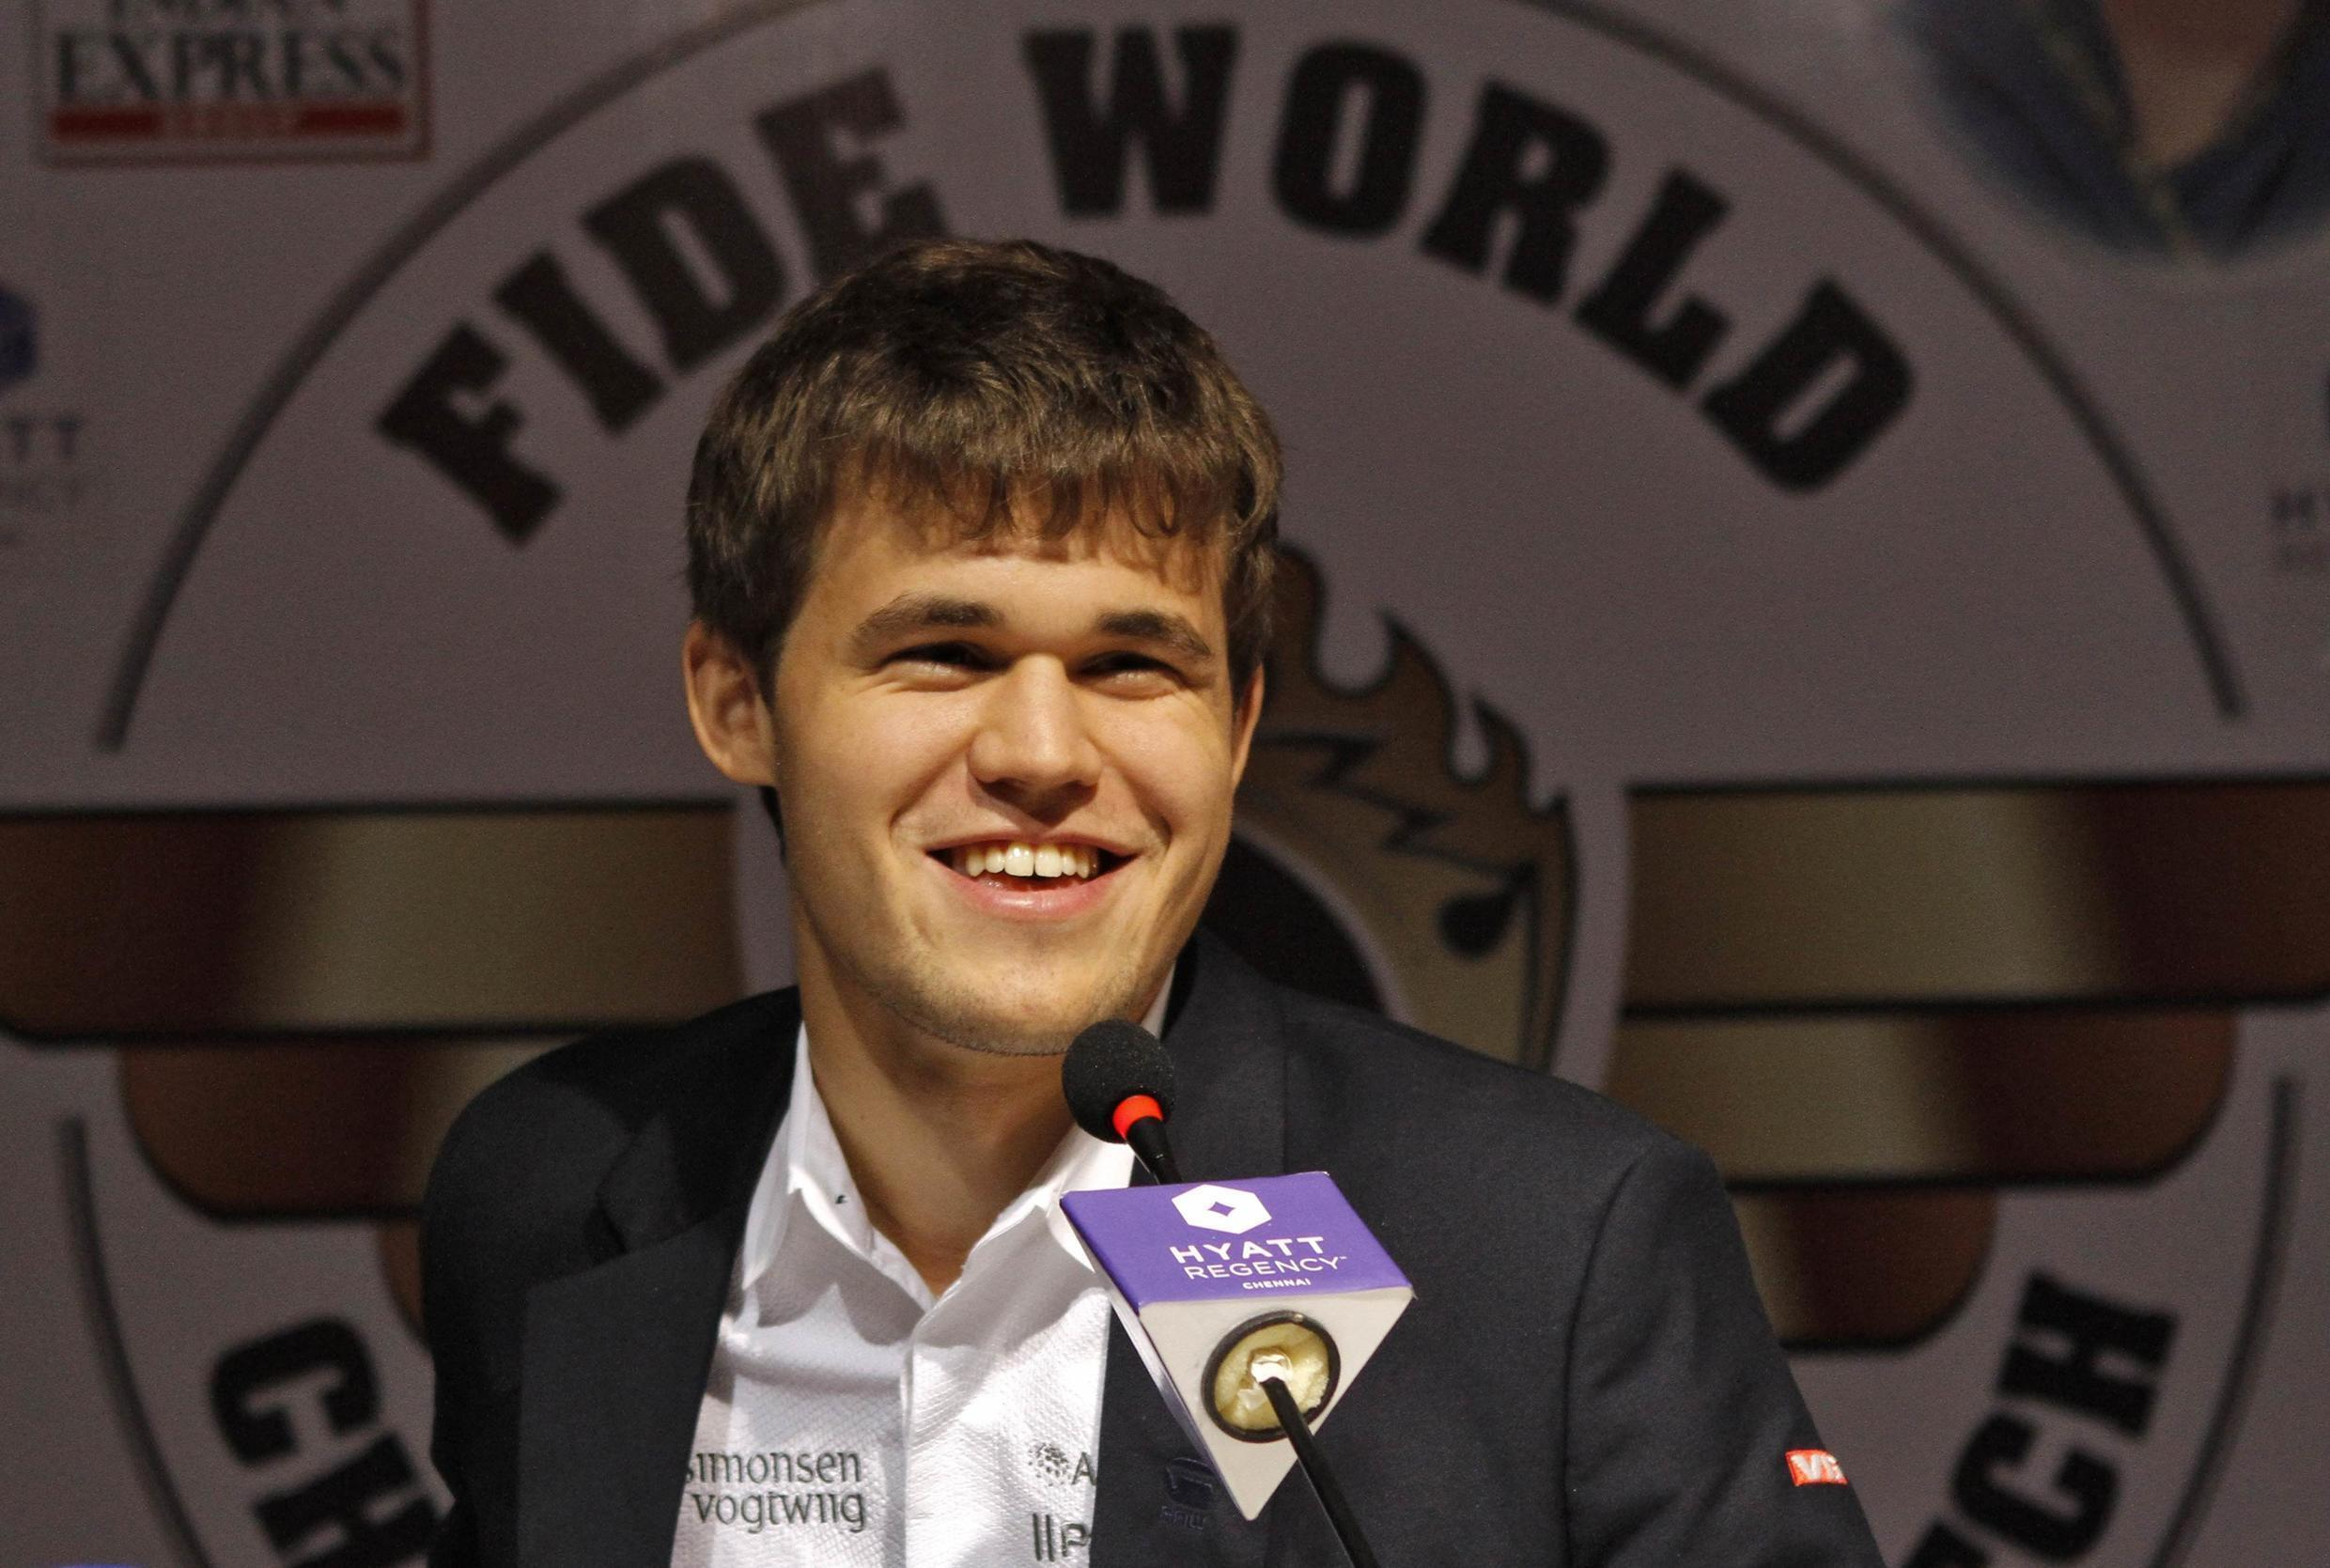 Norway's Magnus Carlsen smiles as he speaks with the media at a news conference after clinching the FIDE World Chess Championship in the southern Indian city of Chennai November 22, 2013.